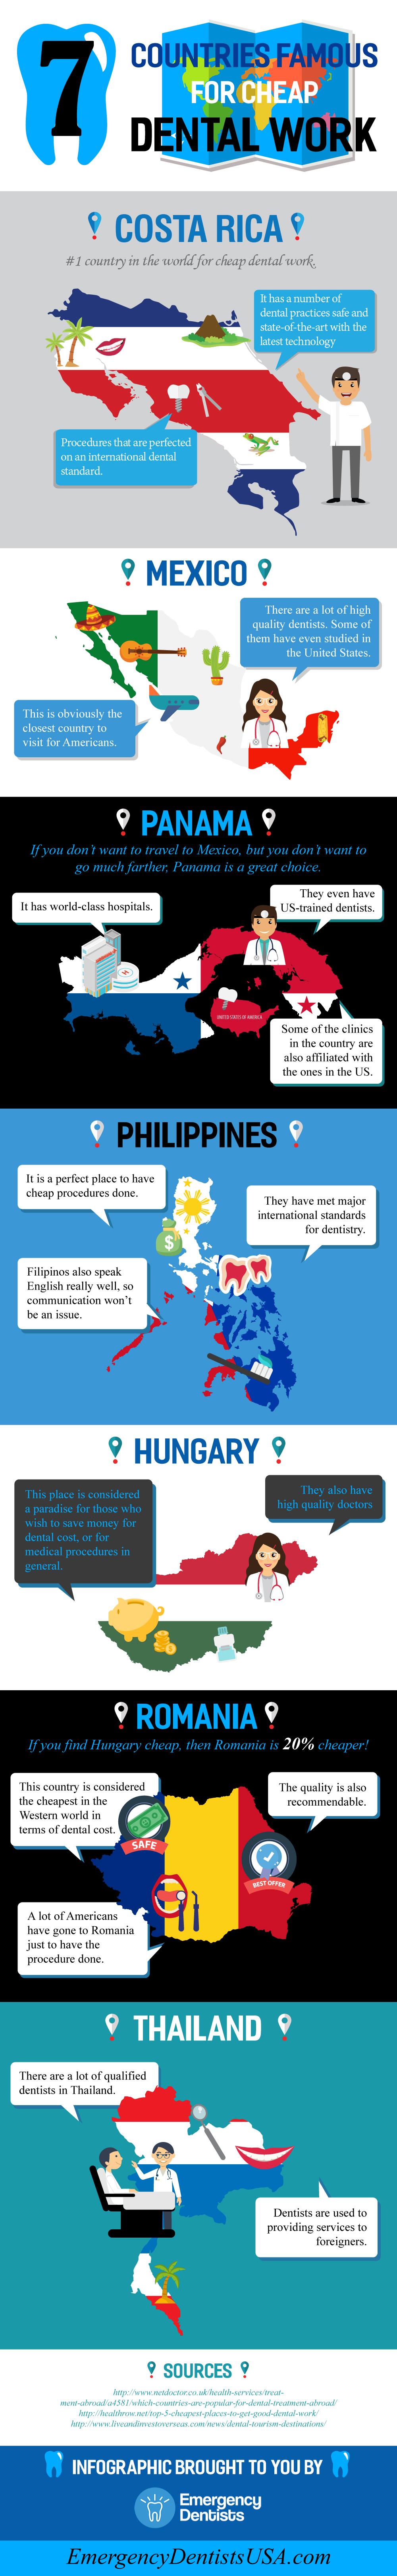 7-Countries-Famous-For-Cheap-Dental-Work---infographic